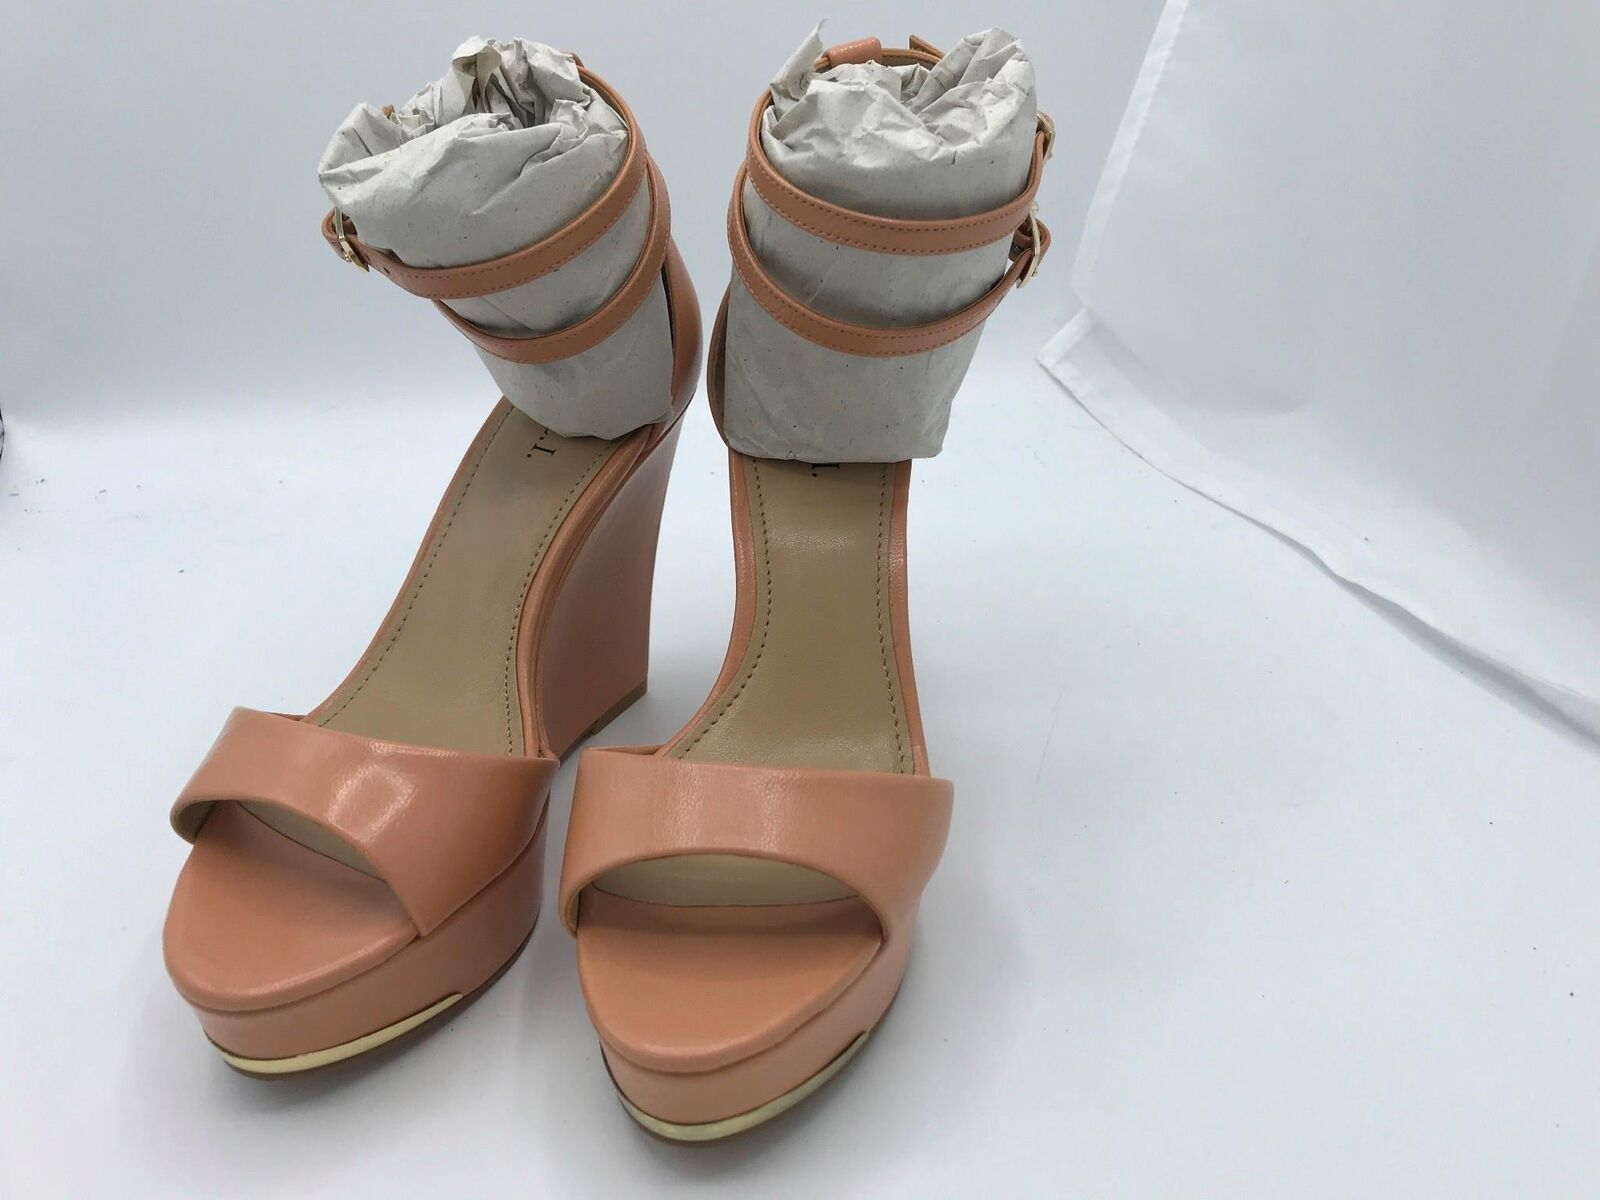 G.I.L.I. Leather Ankle-Strap Wedges-Avery (1654) Apricot Sz 5.5M 5.5M 5.5M d01be5